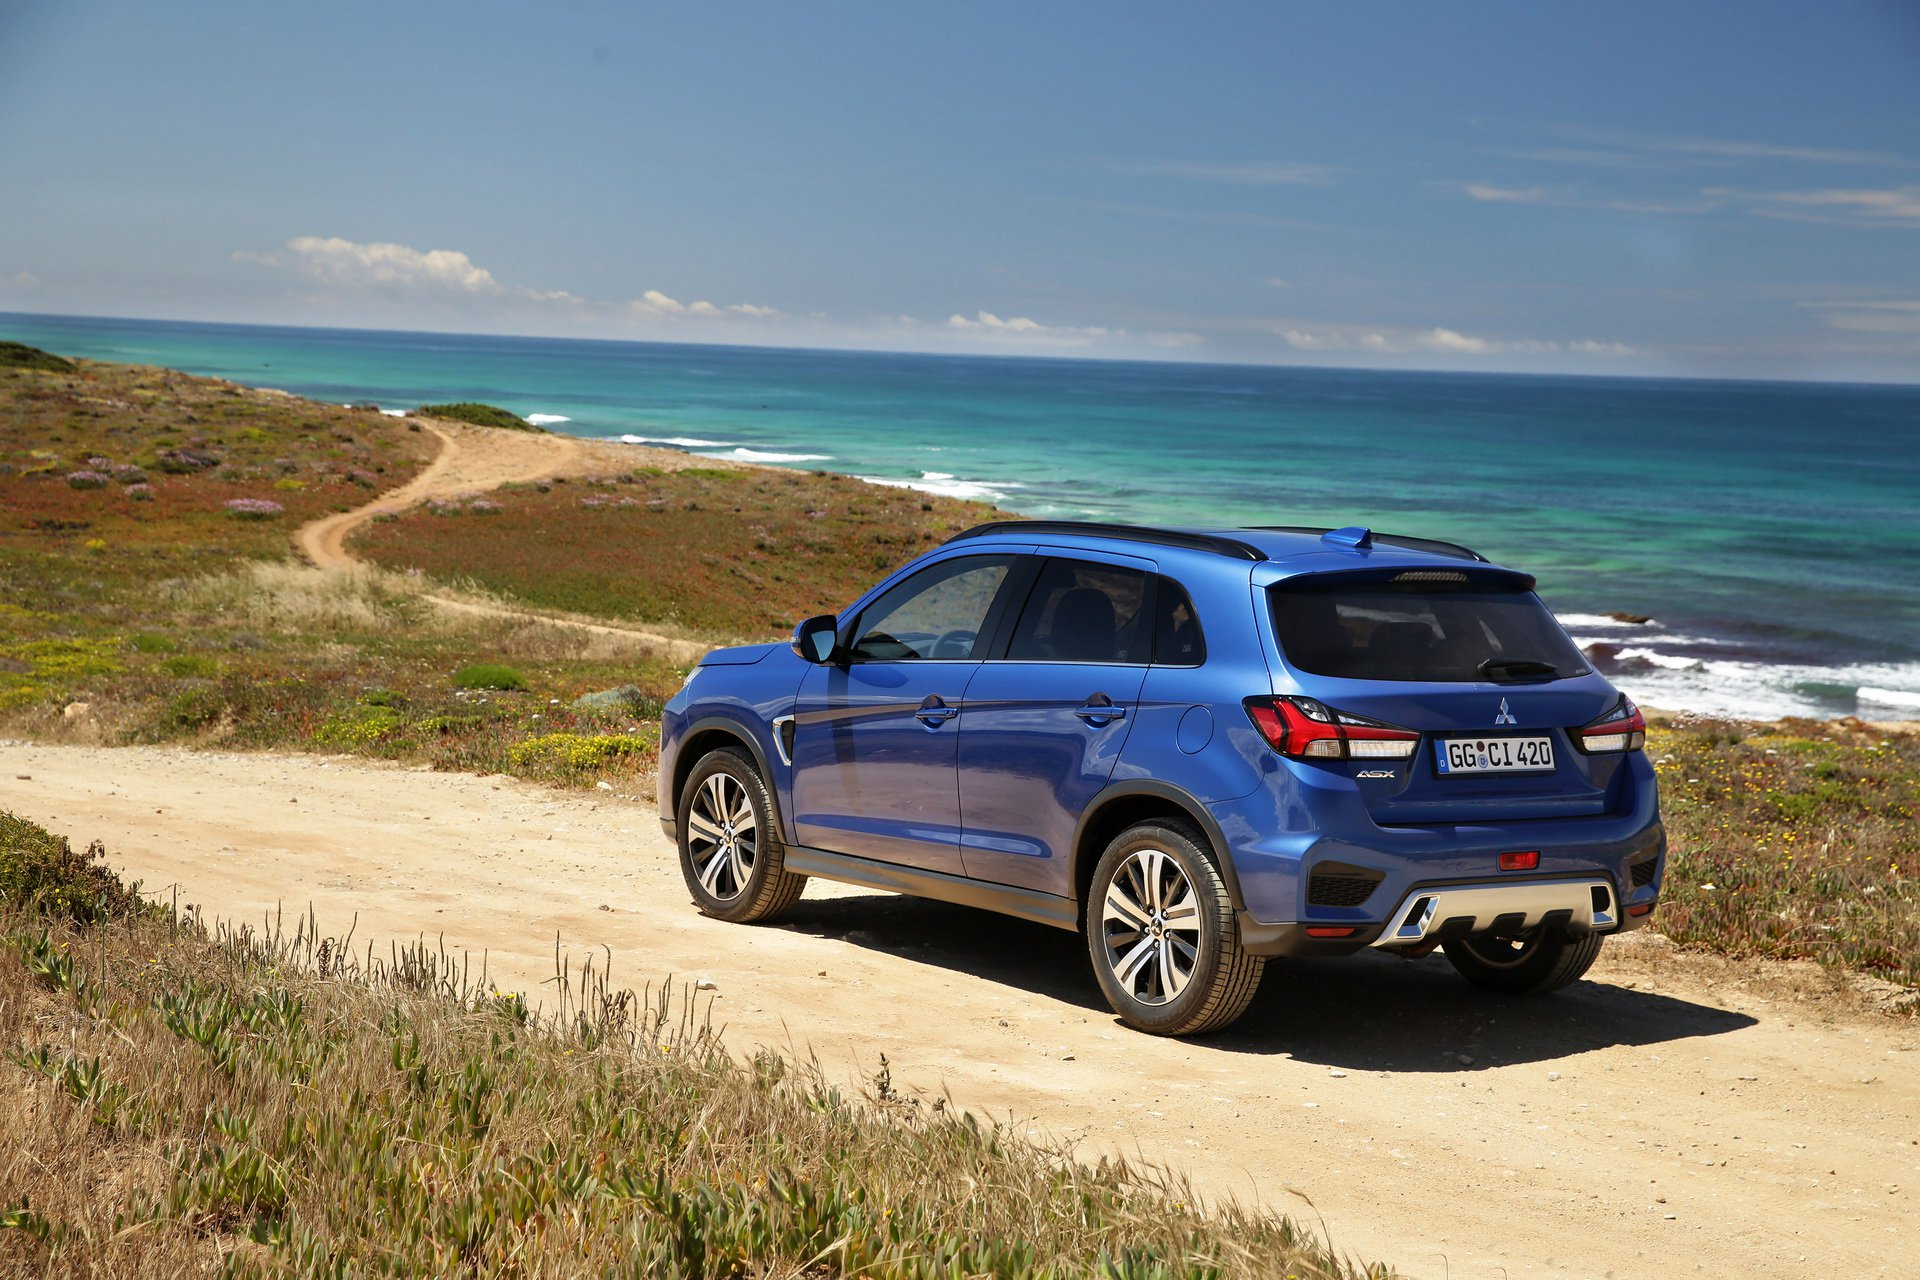 2020 Mitsubishi Outlander Sport: Updated Styling And Infotainment System, Release, Price >> 2020 Mitsubishi Asx Heading To The Uk This Fall Autoevolution